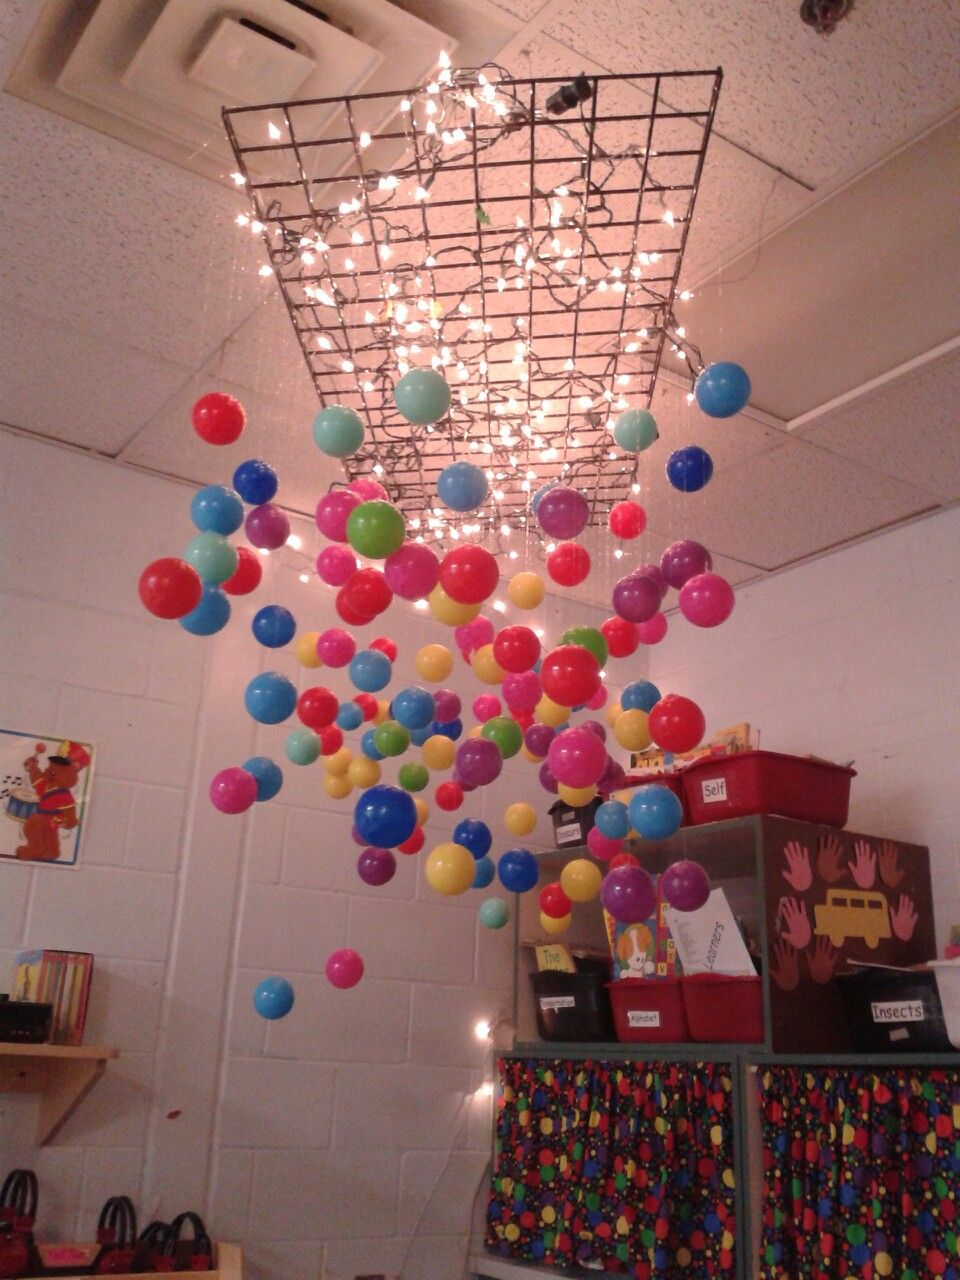 My teachers idea to decorate our preschool classroom. & My teachers idea to decorate our preschool classroom. | Things I ...